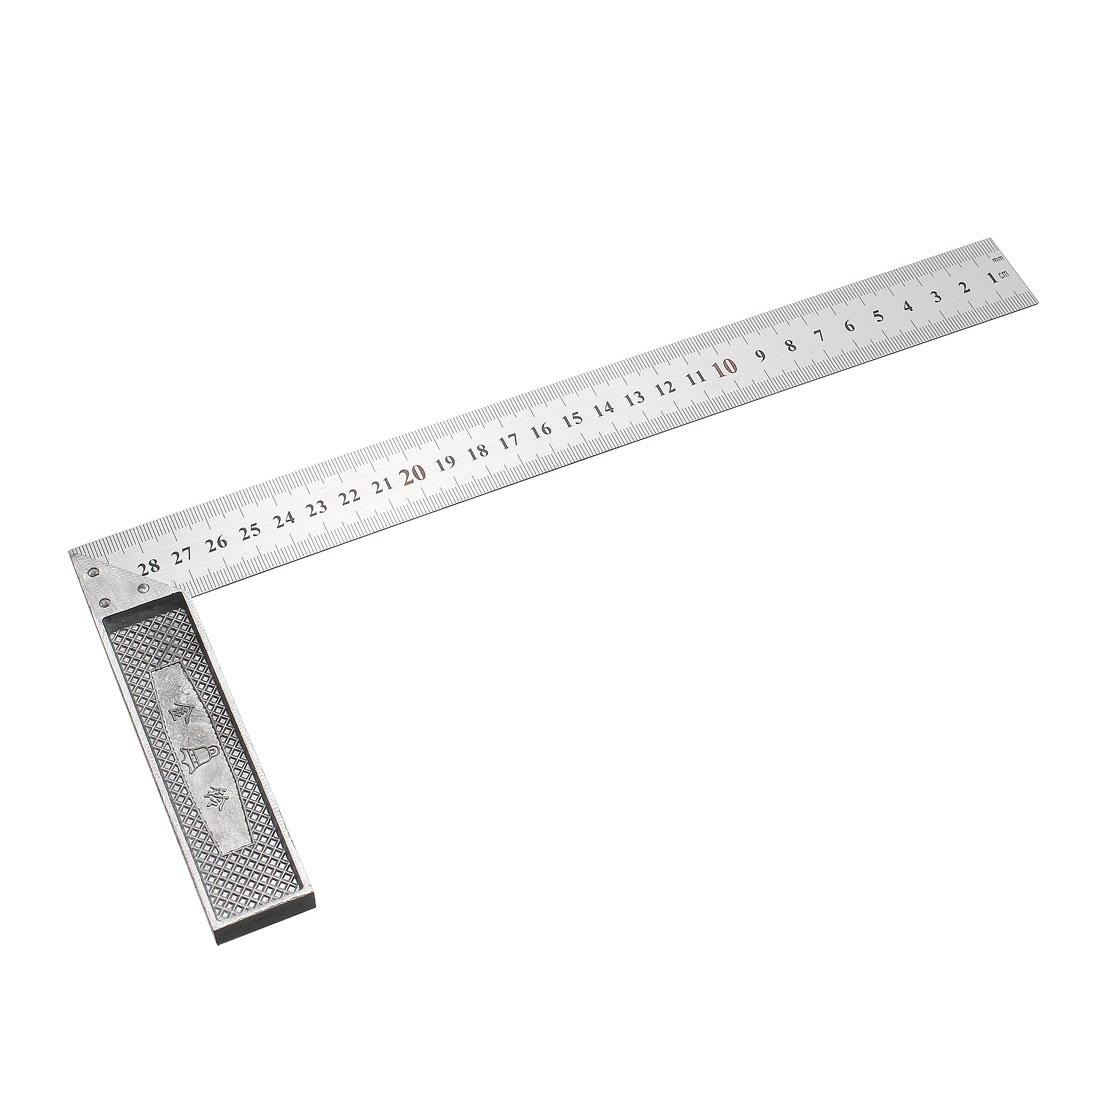 L Square 300mm Stainless Steel 90 Degree Angle Ruler Right Measuring Layout Tool